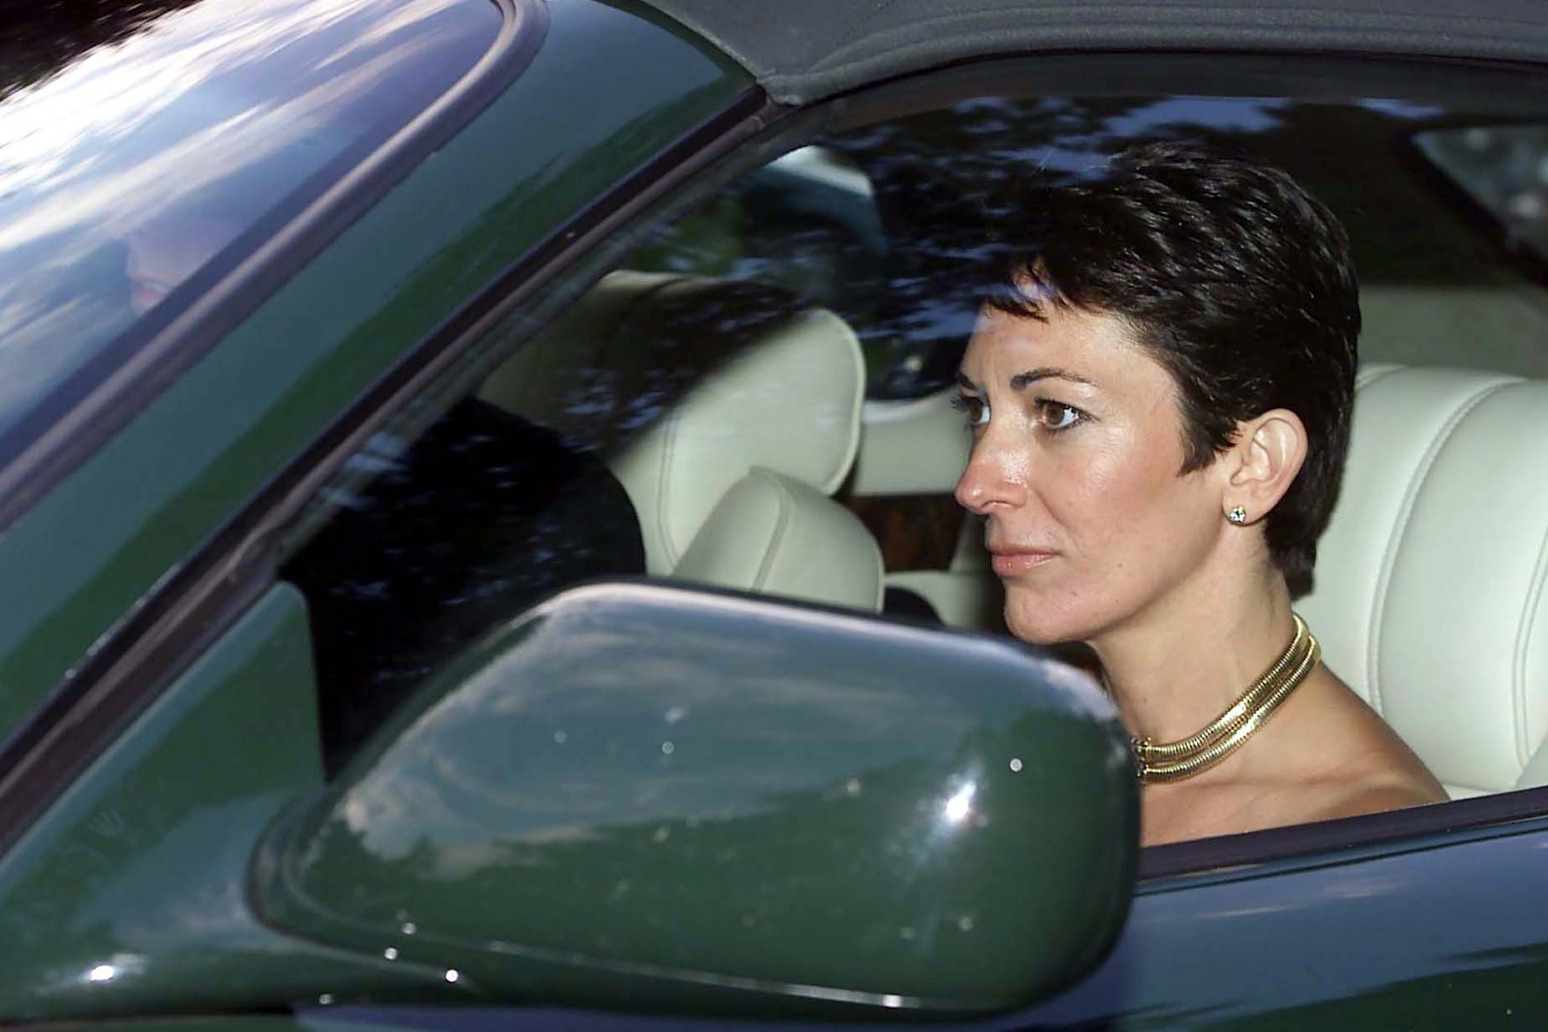 Ghislaine Maxwell's July trial postponed